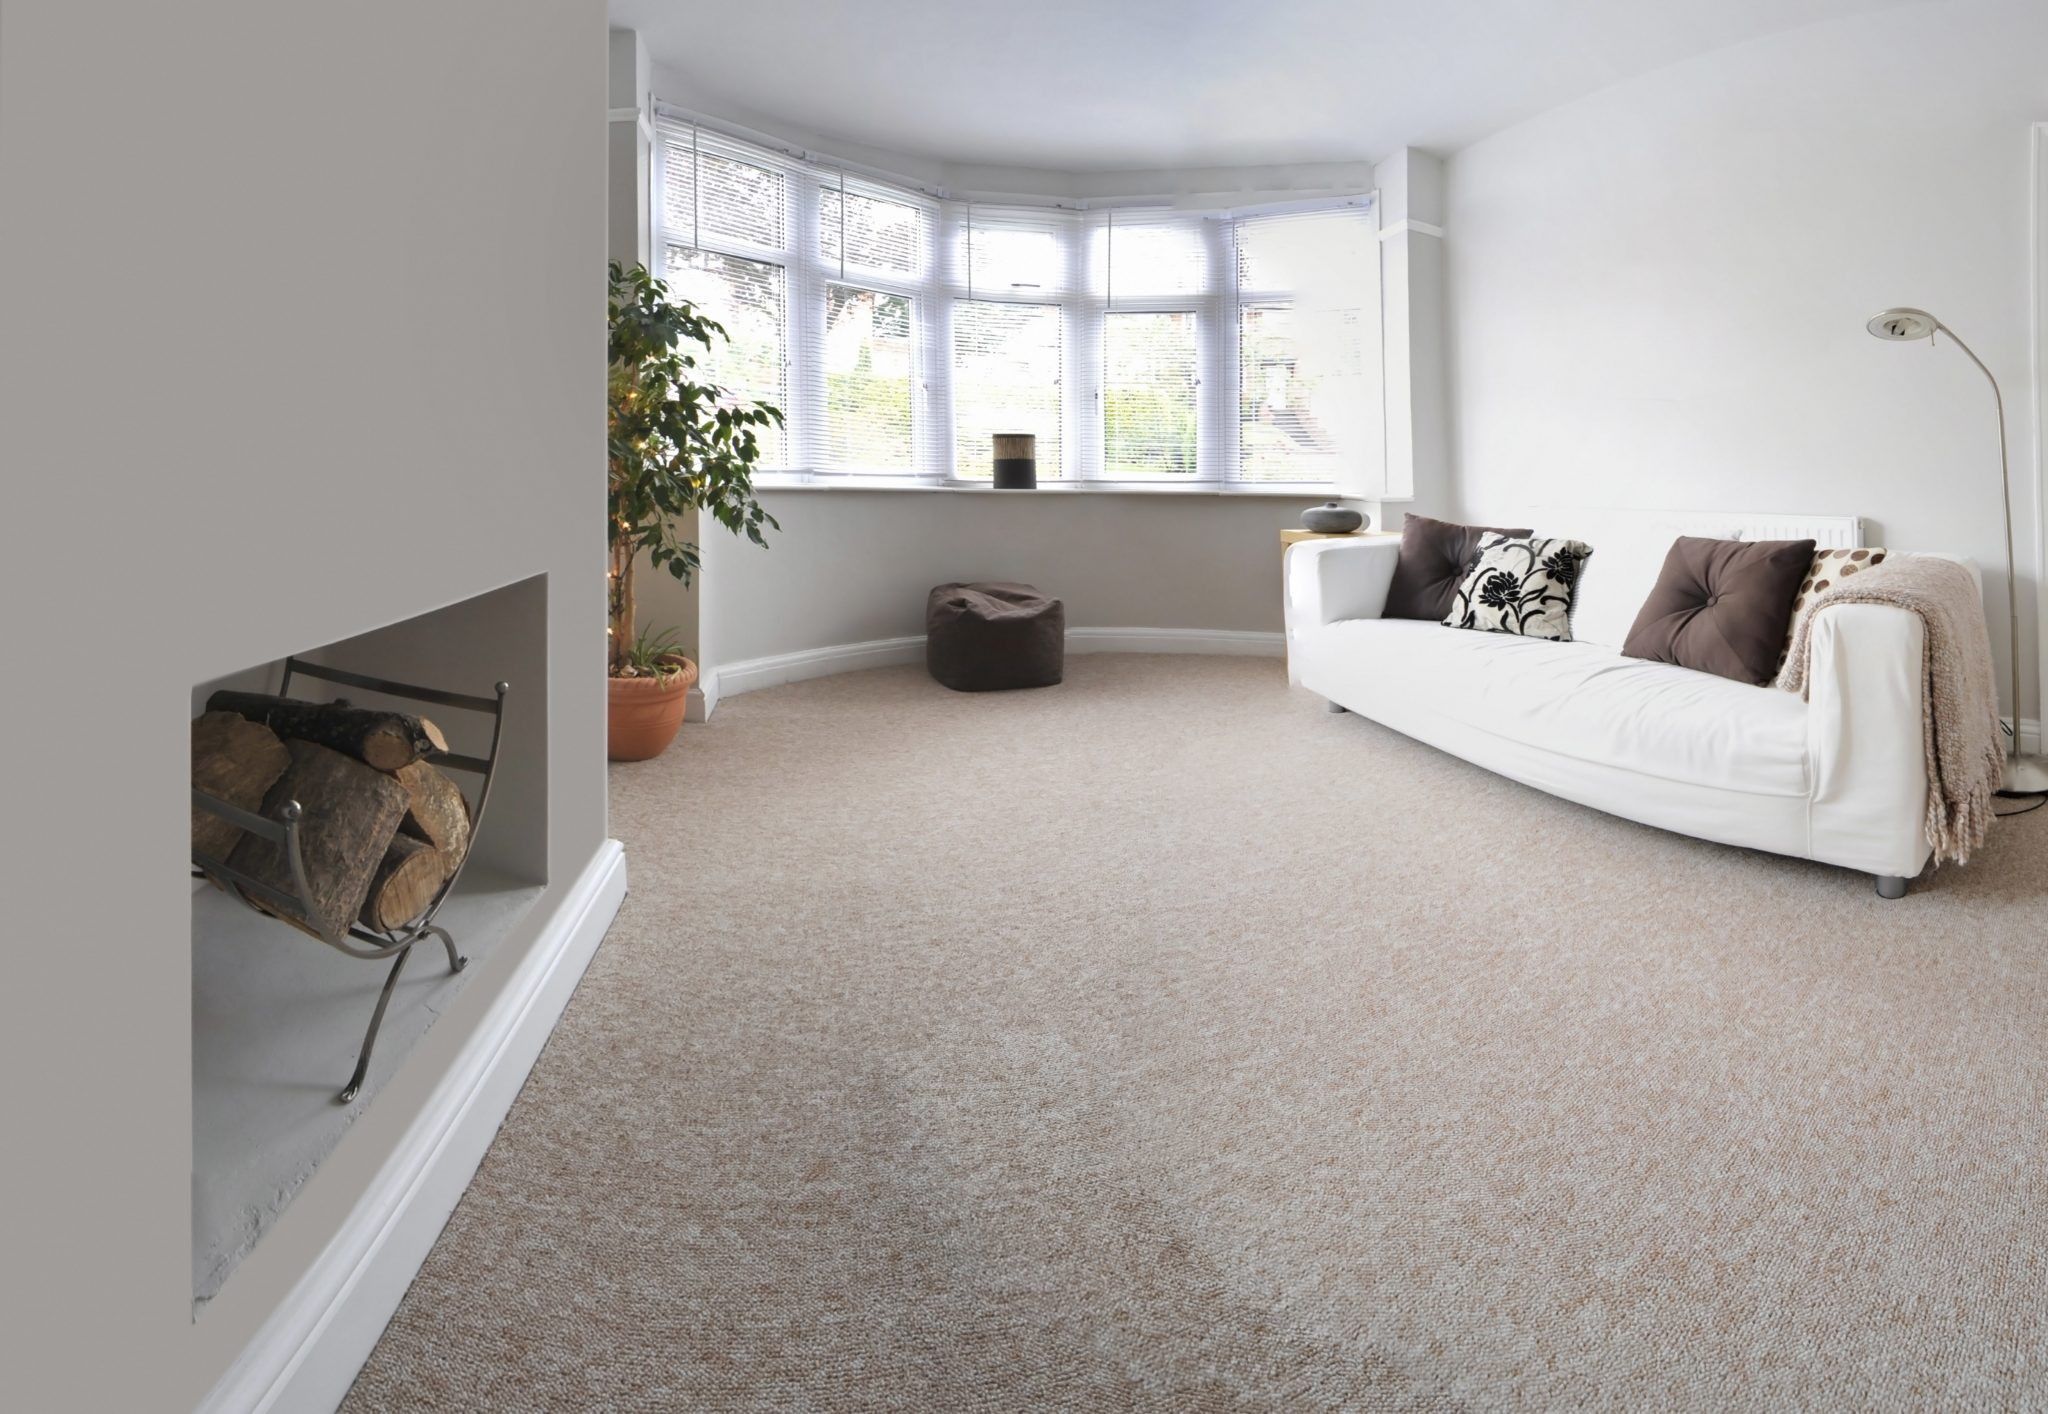 Abfresh Carpet Cleaning Services | North East